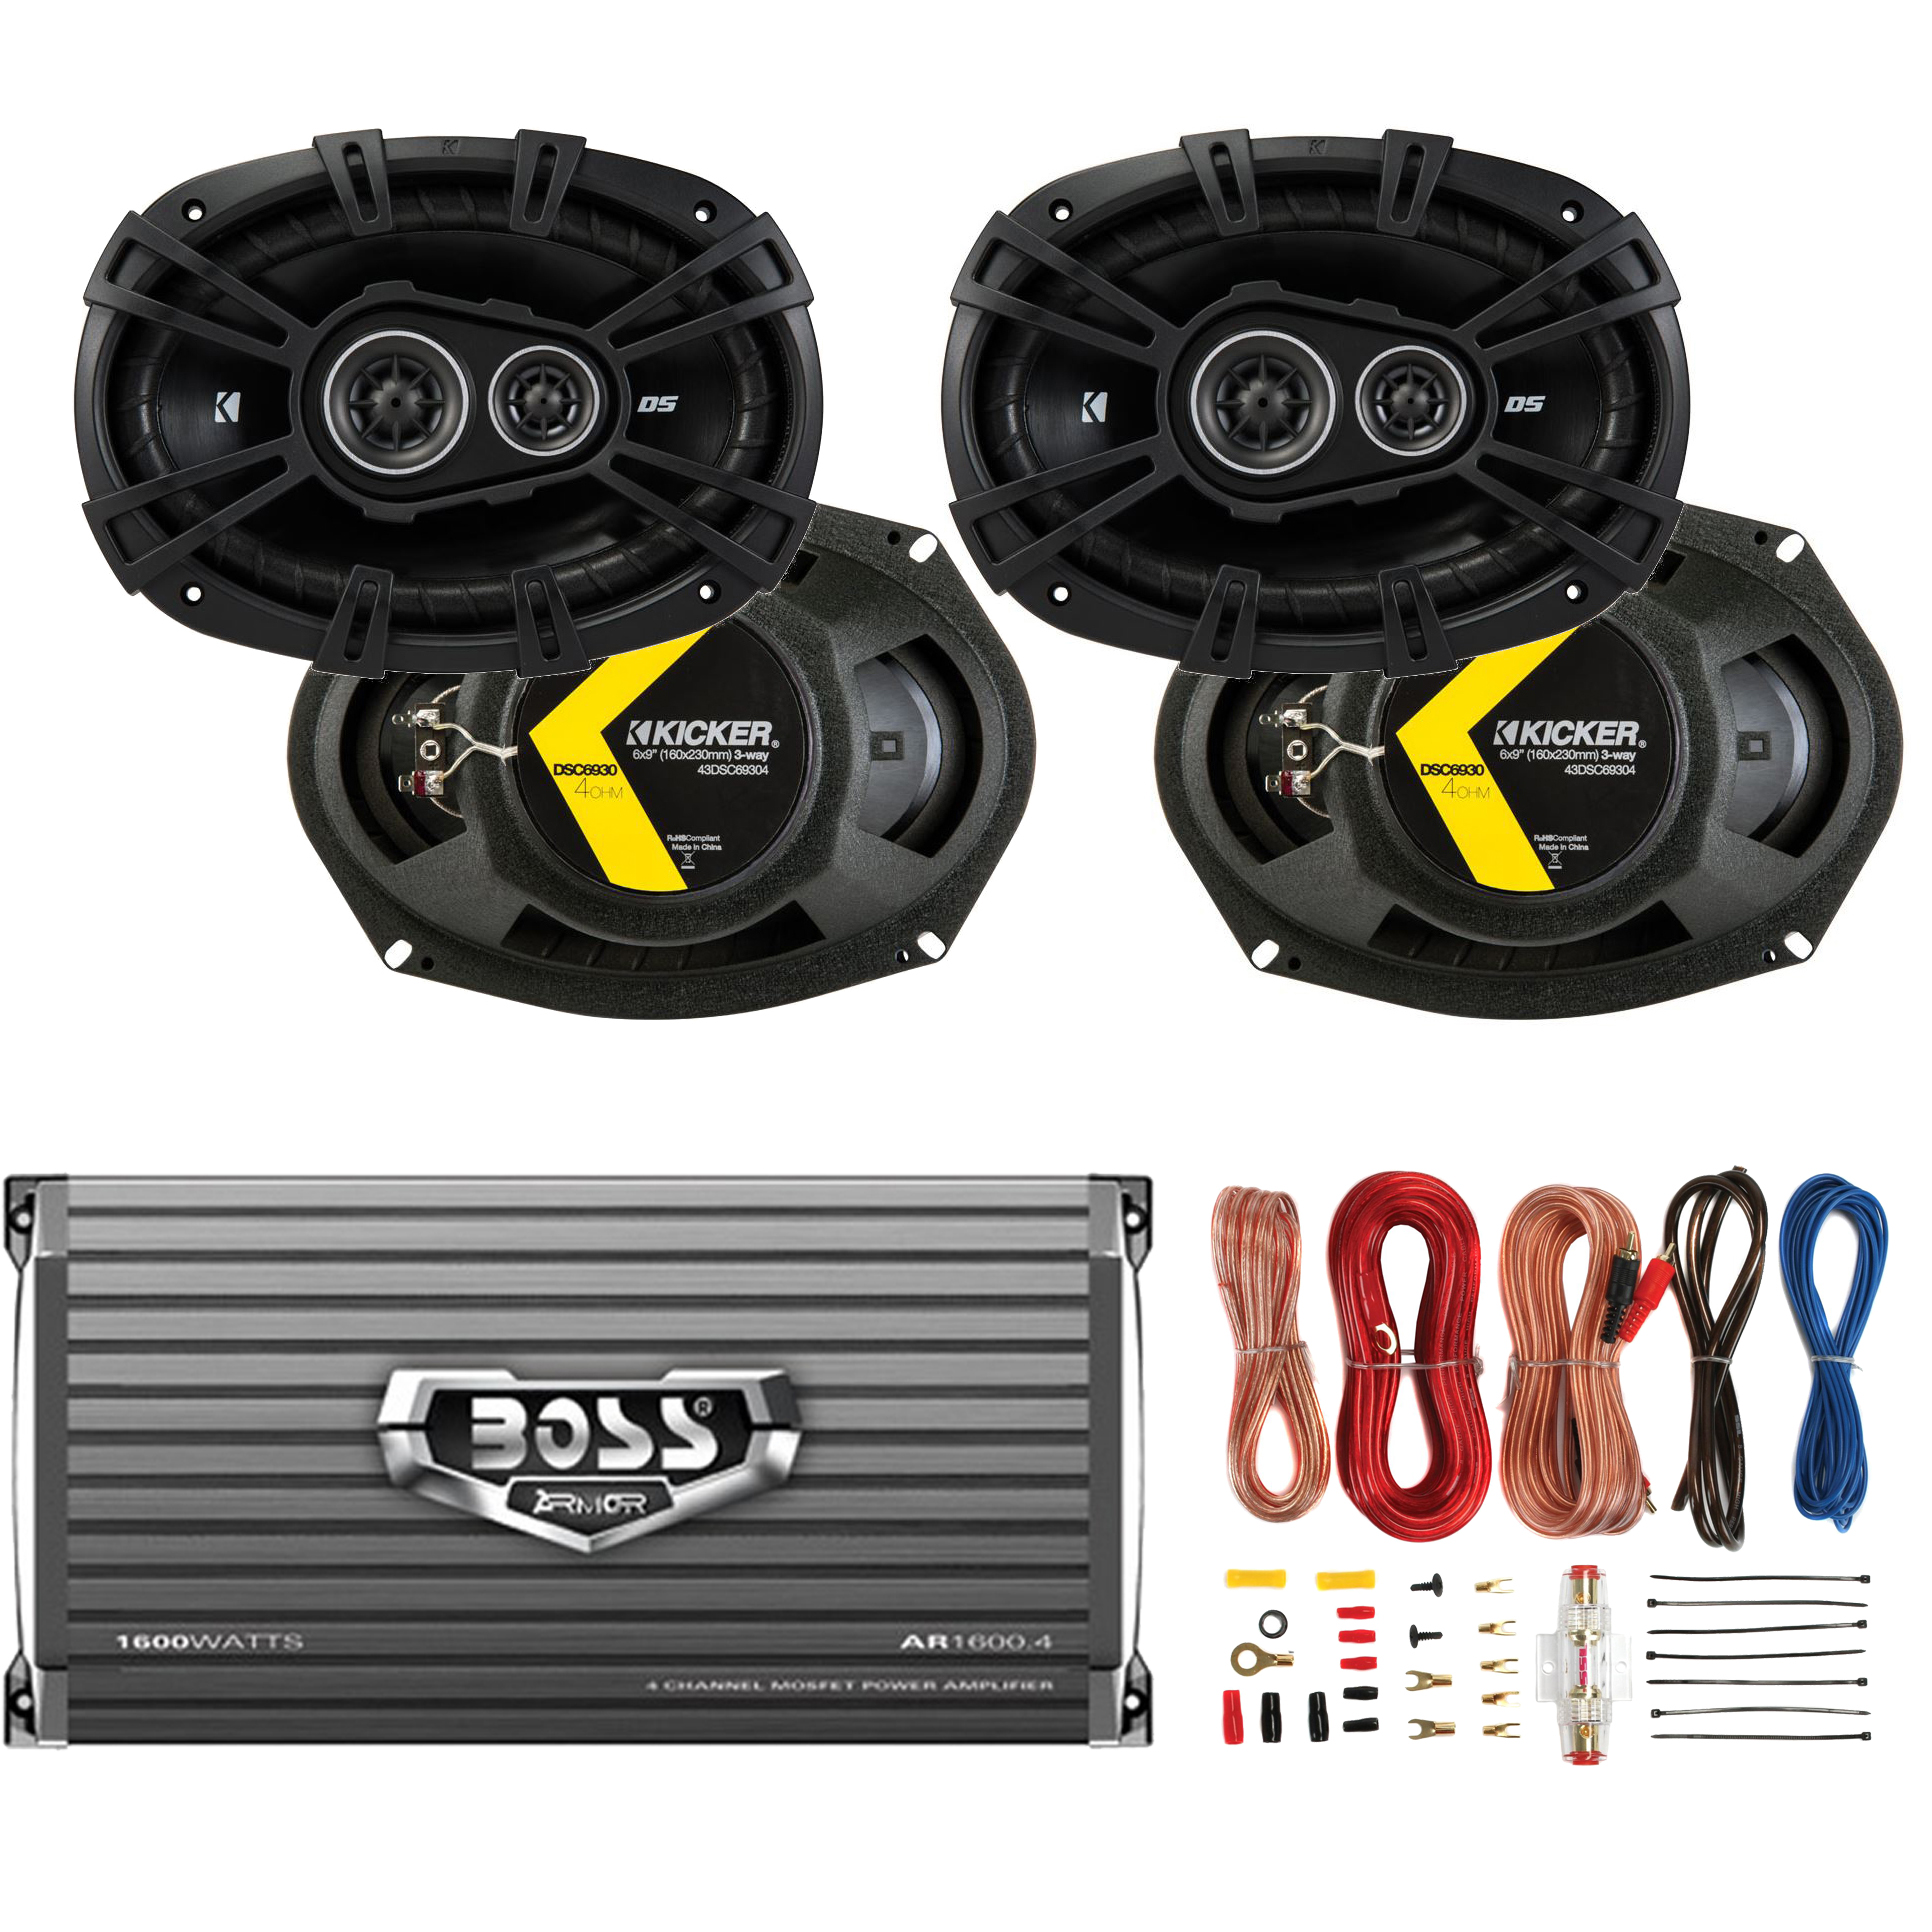 Kicker 6x9 U0026quot  360w Car Speakers  4 Pack    Boss 1600w Amplifier   8 Gauge Wiring